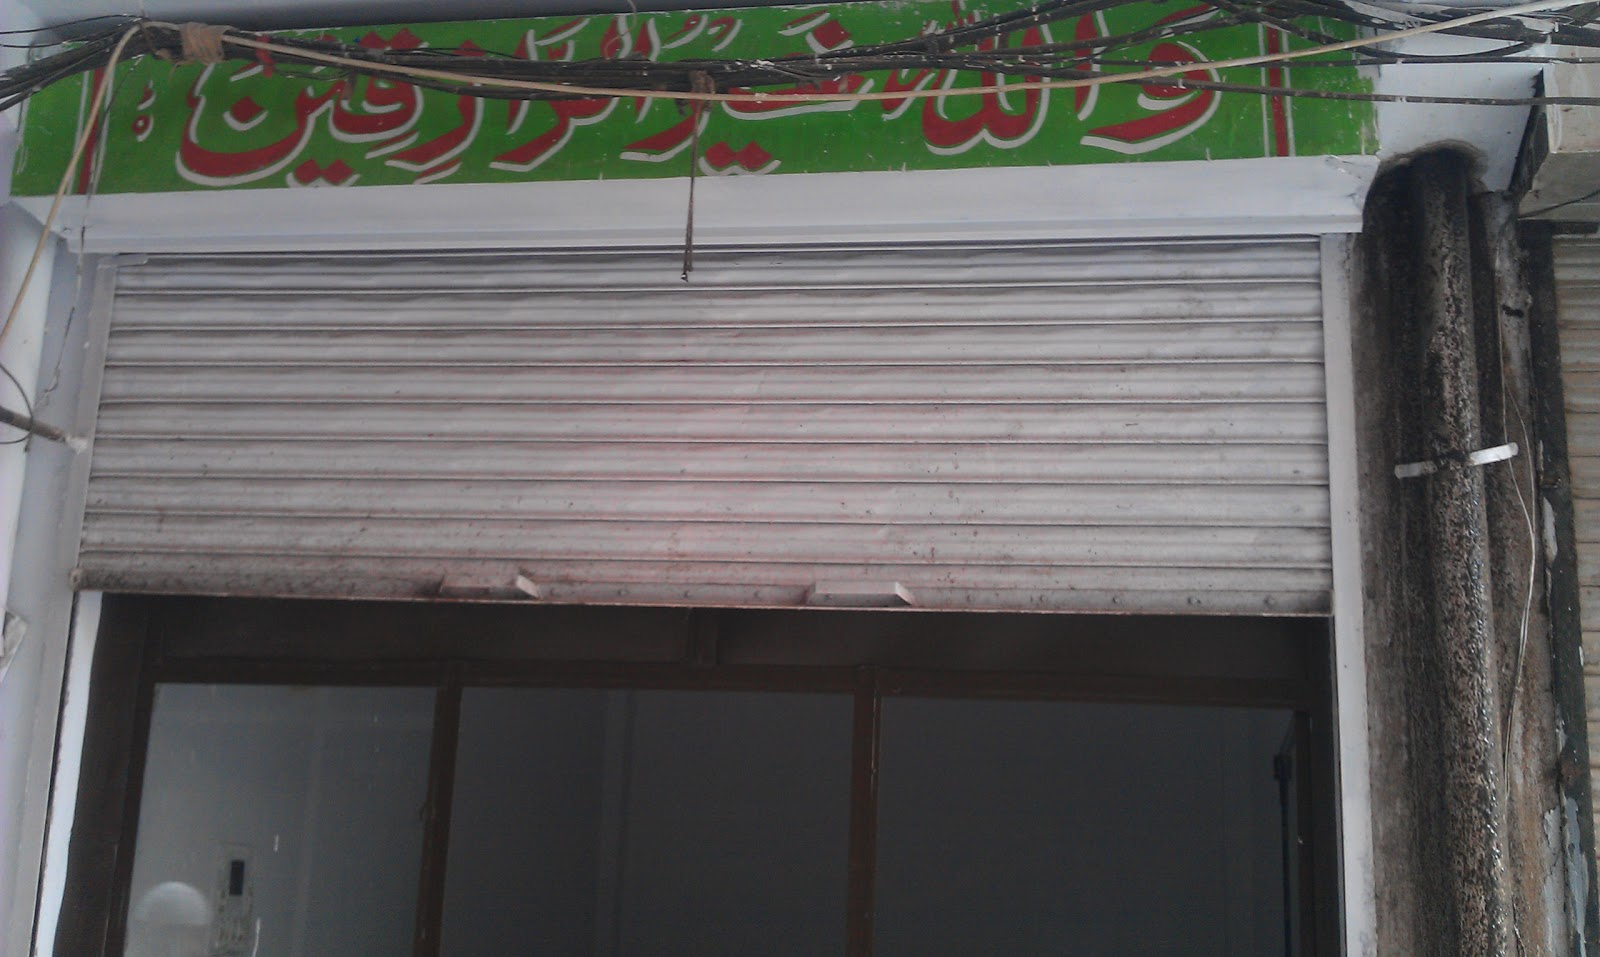 Real Estate Business: Commercial Shop in Sadiqabad